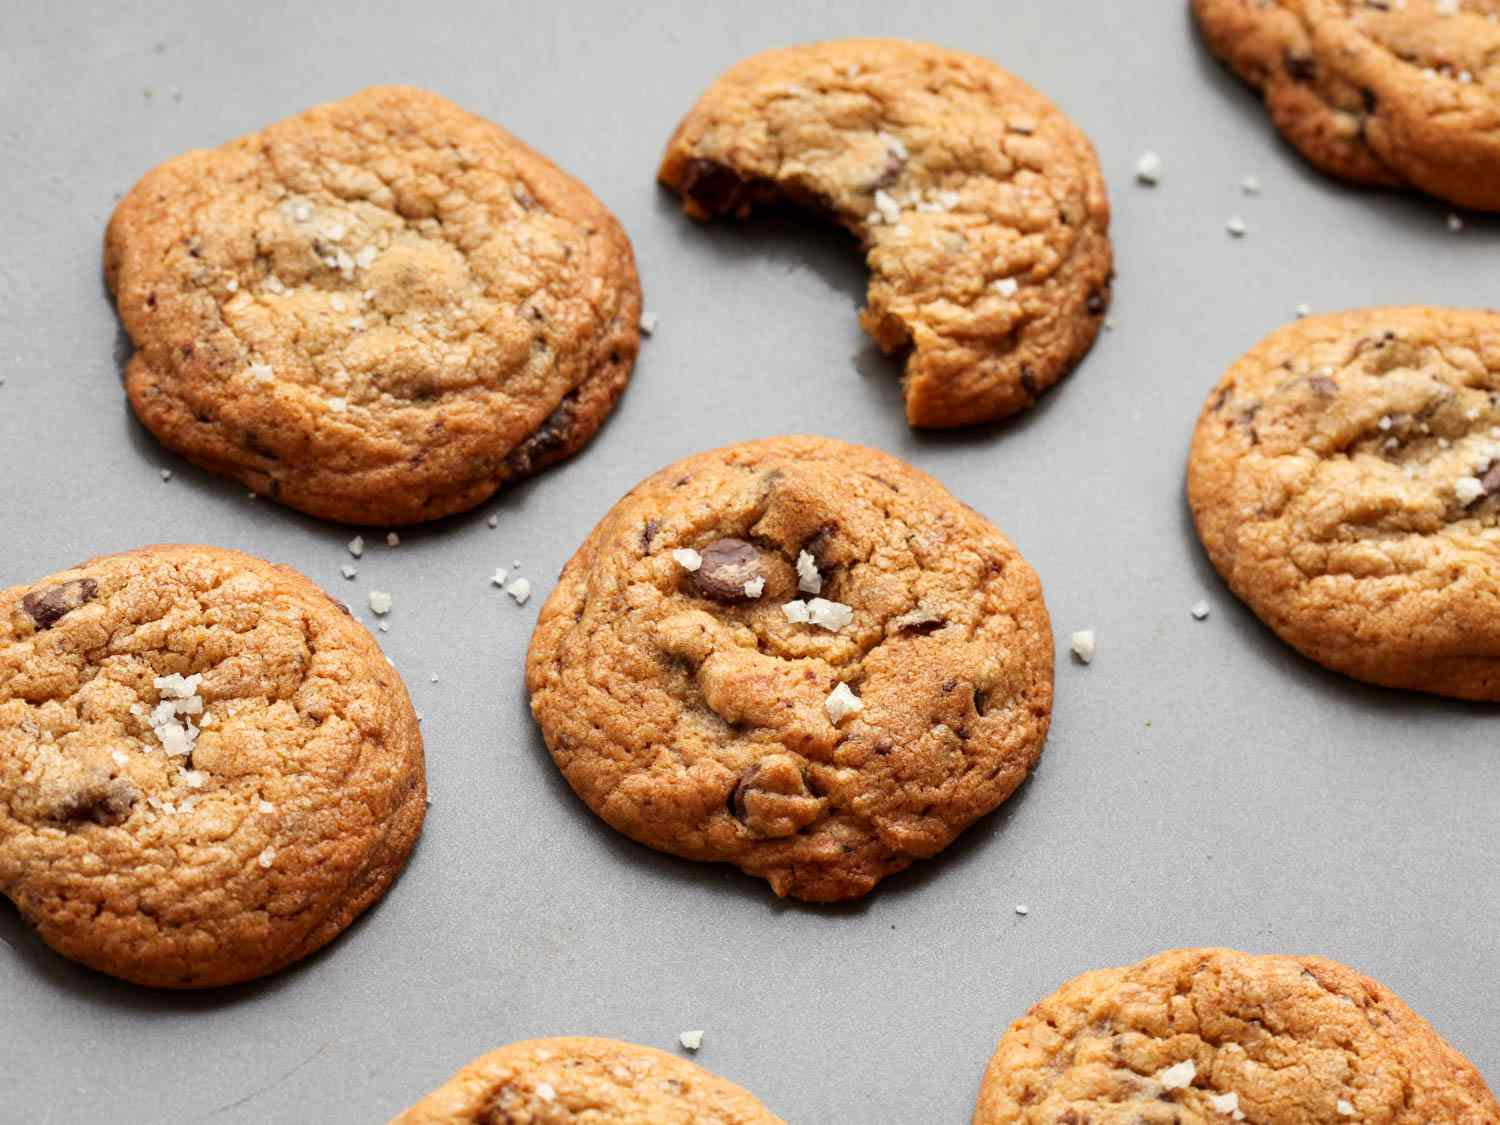 Chocolate chip cookies on a grey background with one cookie with a bite taken out.